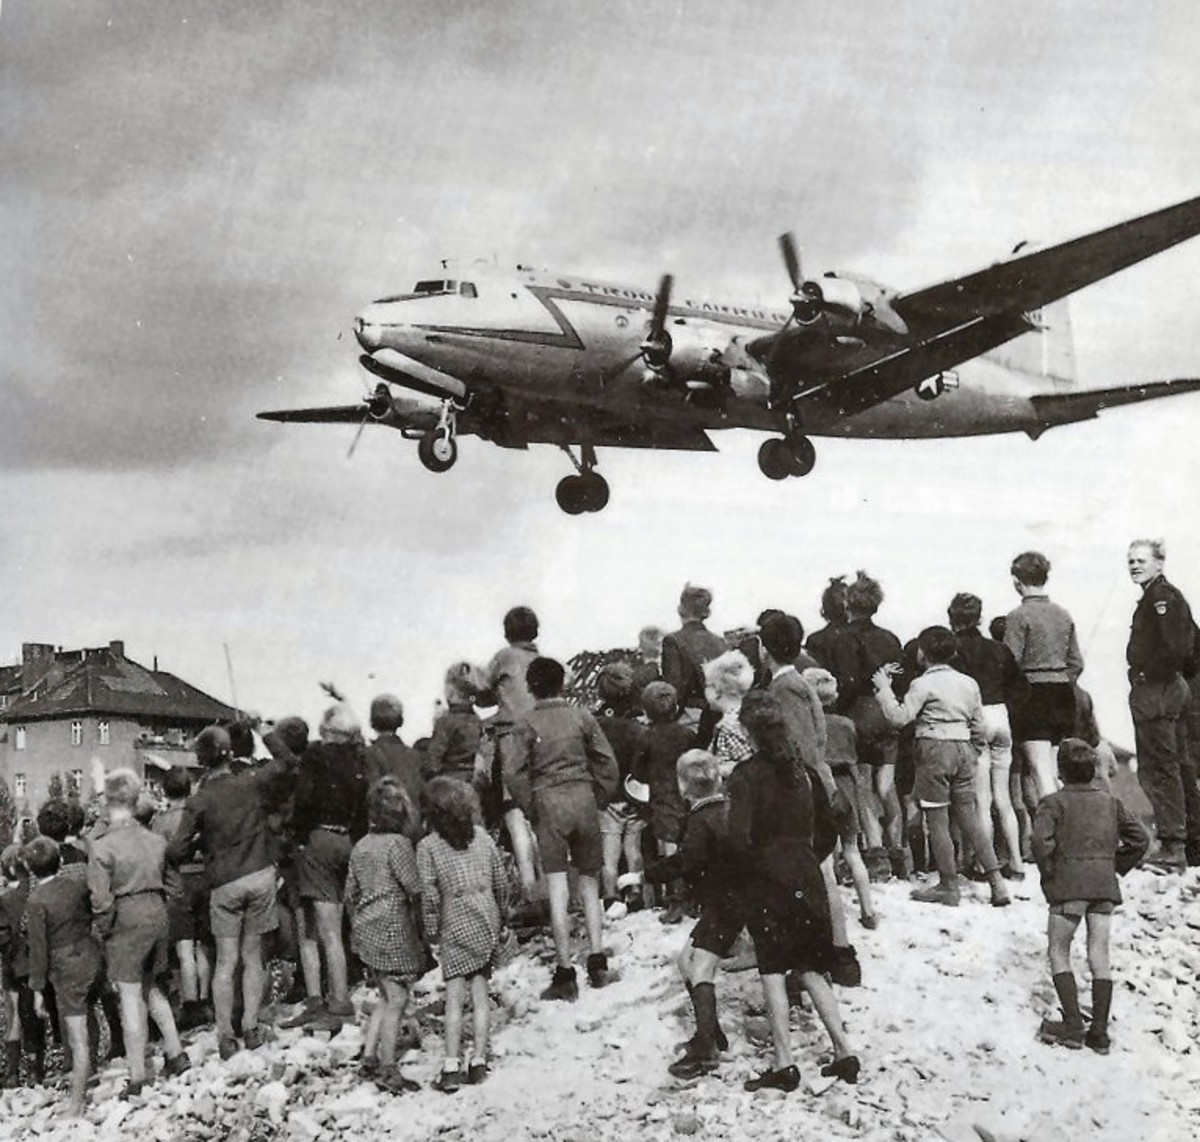 Berliners watch a C-54 land at Berlin's Tempelhof Airport, 1948